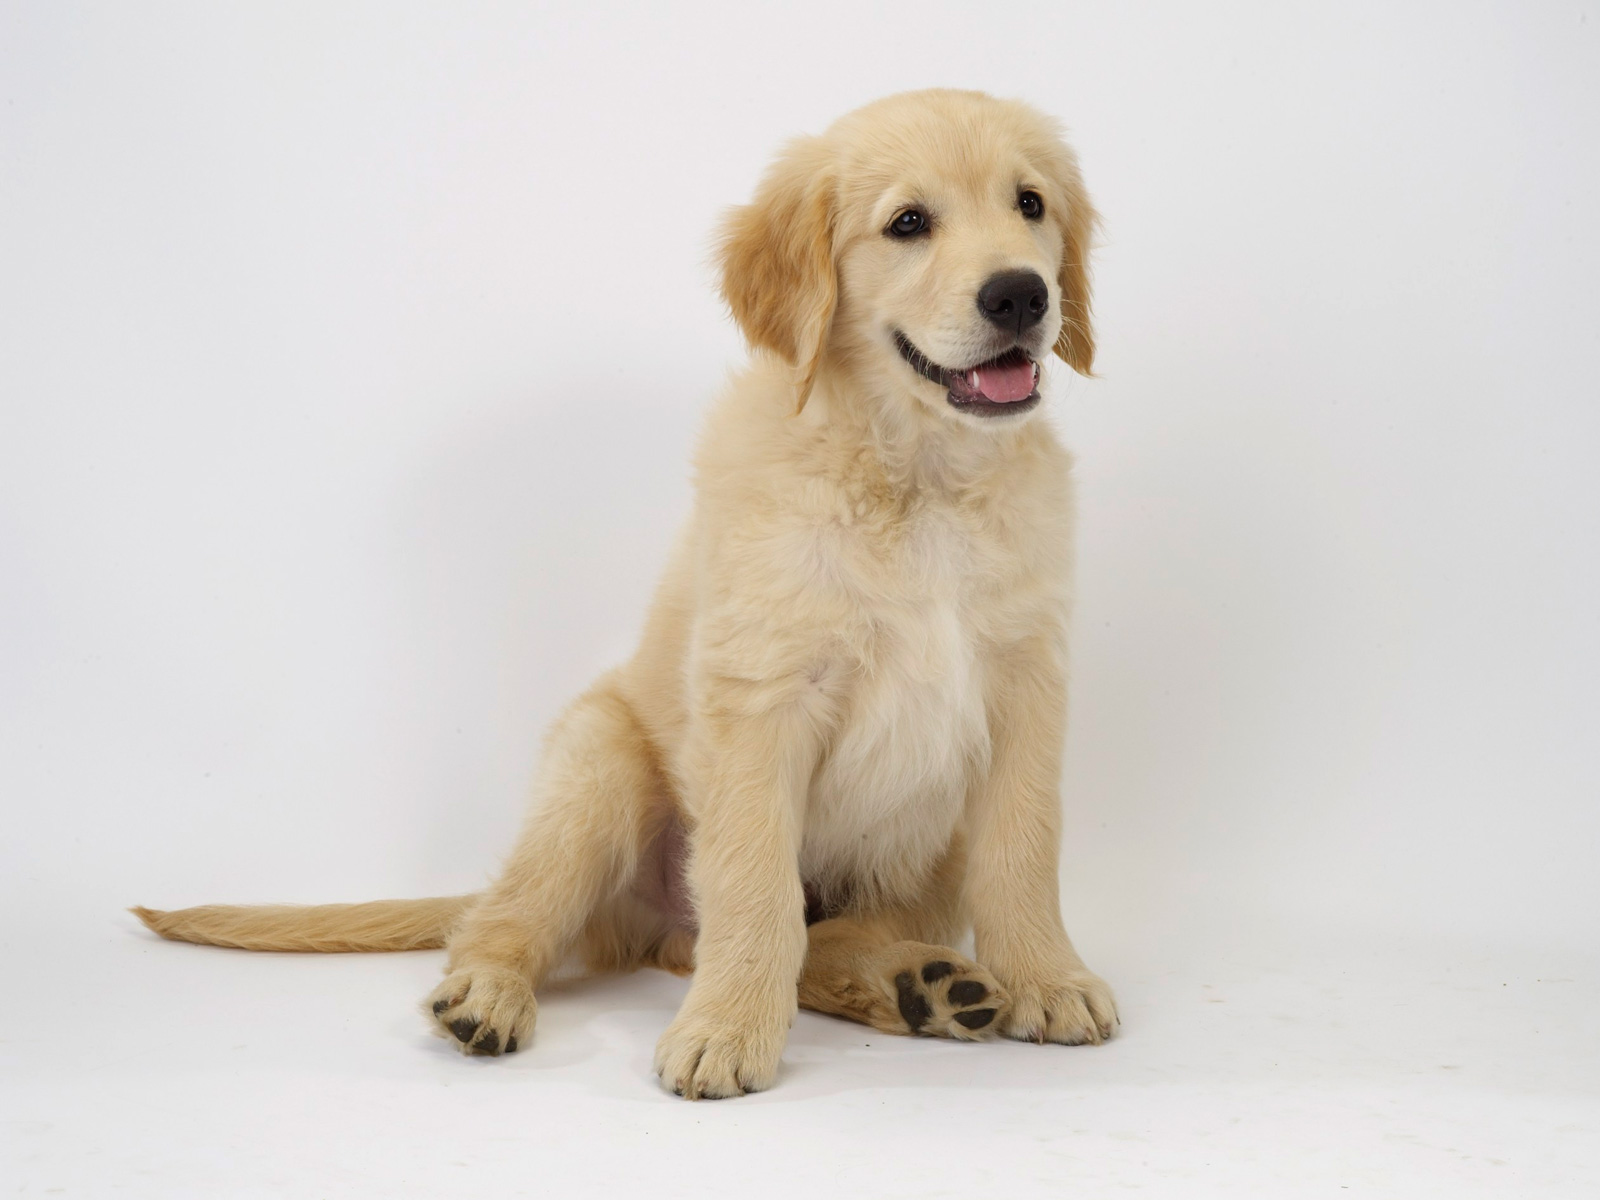 Golden retrievers are also so cute! They are adorable!